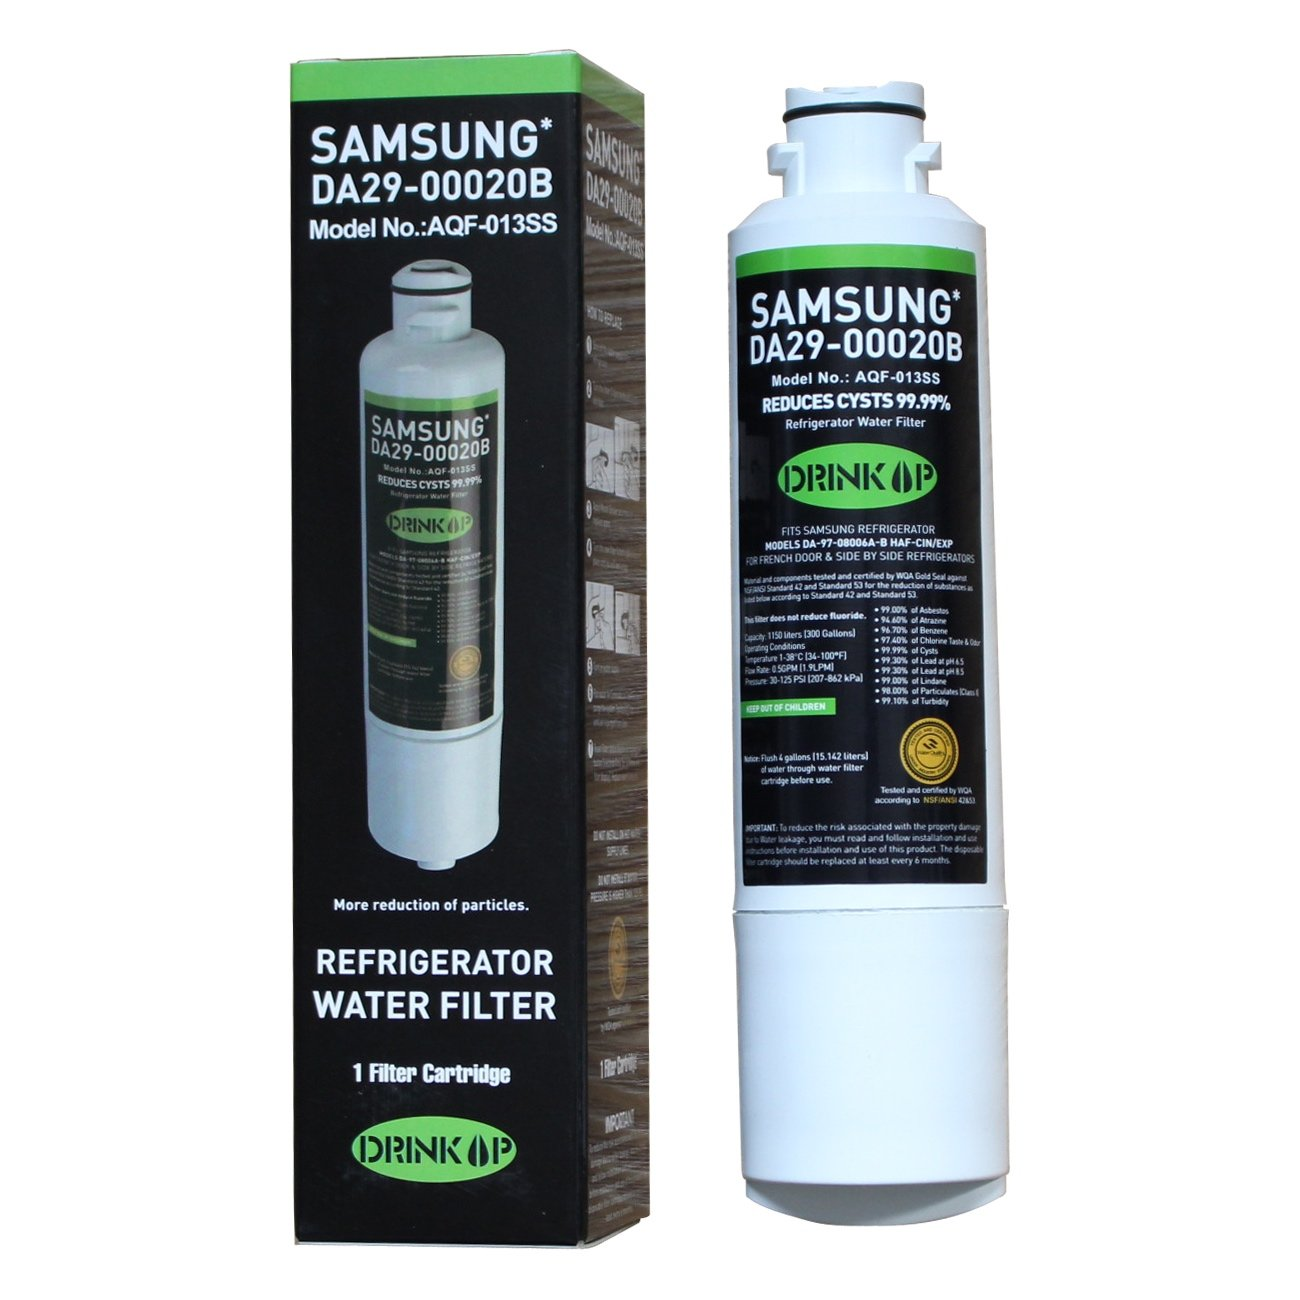 DrinkUp Replacement Refrigerator Water Filter Compatible with Samsung DA29-00020B, DA29-00020A, HAF-CIN/EXP, fits French Door & Side by Side Refrigerator (1-Pack)